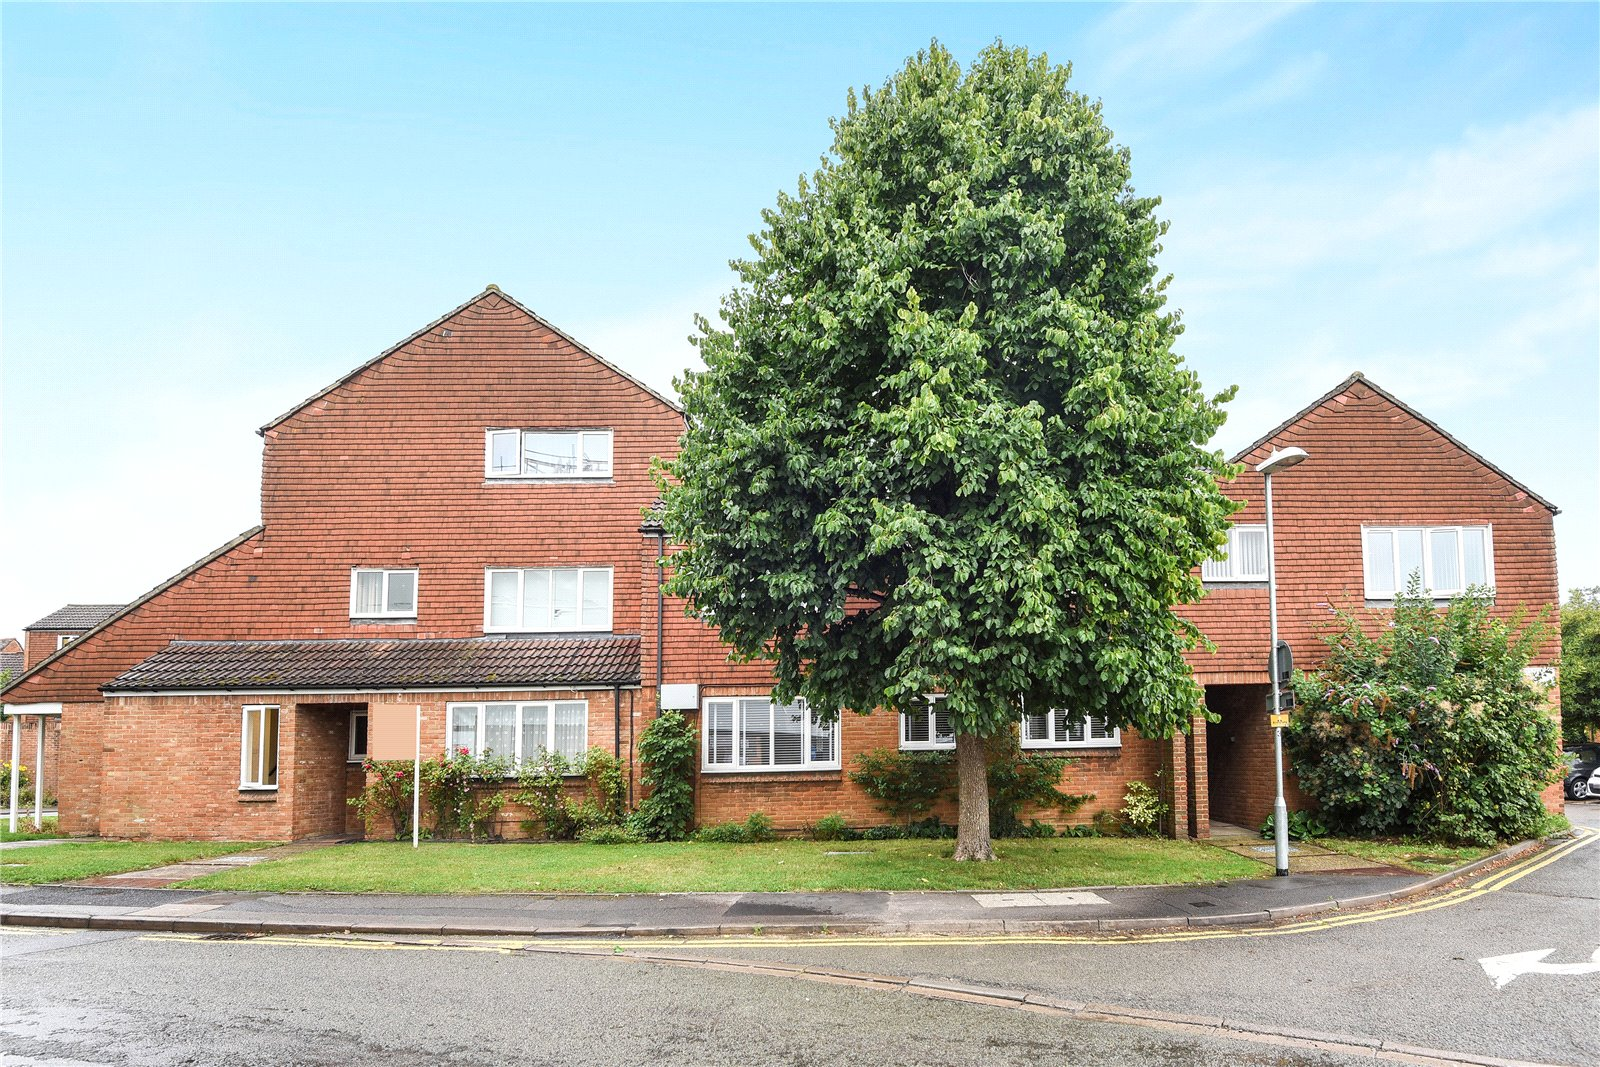 2 Bedrooms Apartment Flat for sale in Mulberry Court, Rose Street, Wokingham, Berkshire, RG40